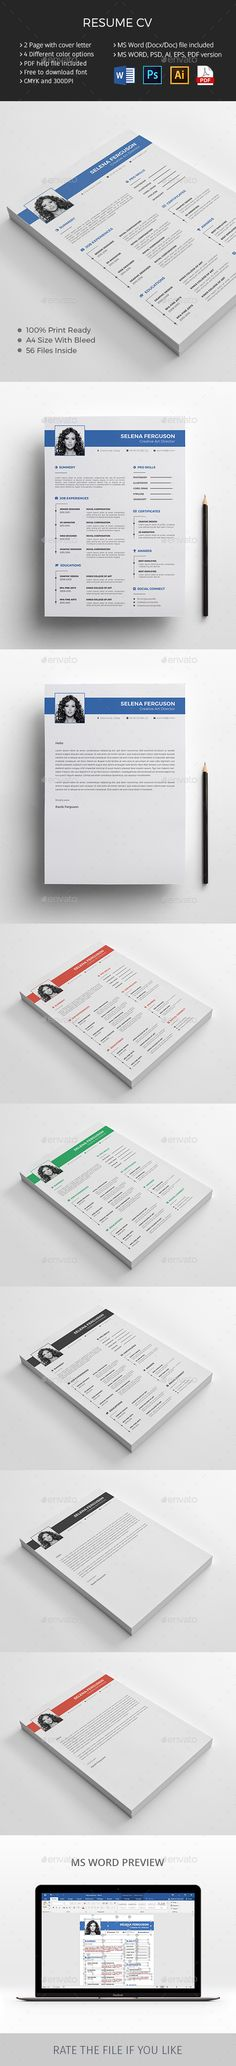 Functional Resume Template Microsoft%0A free professional resume template downloads